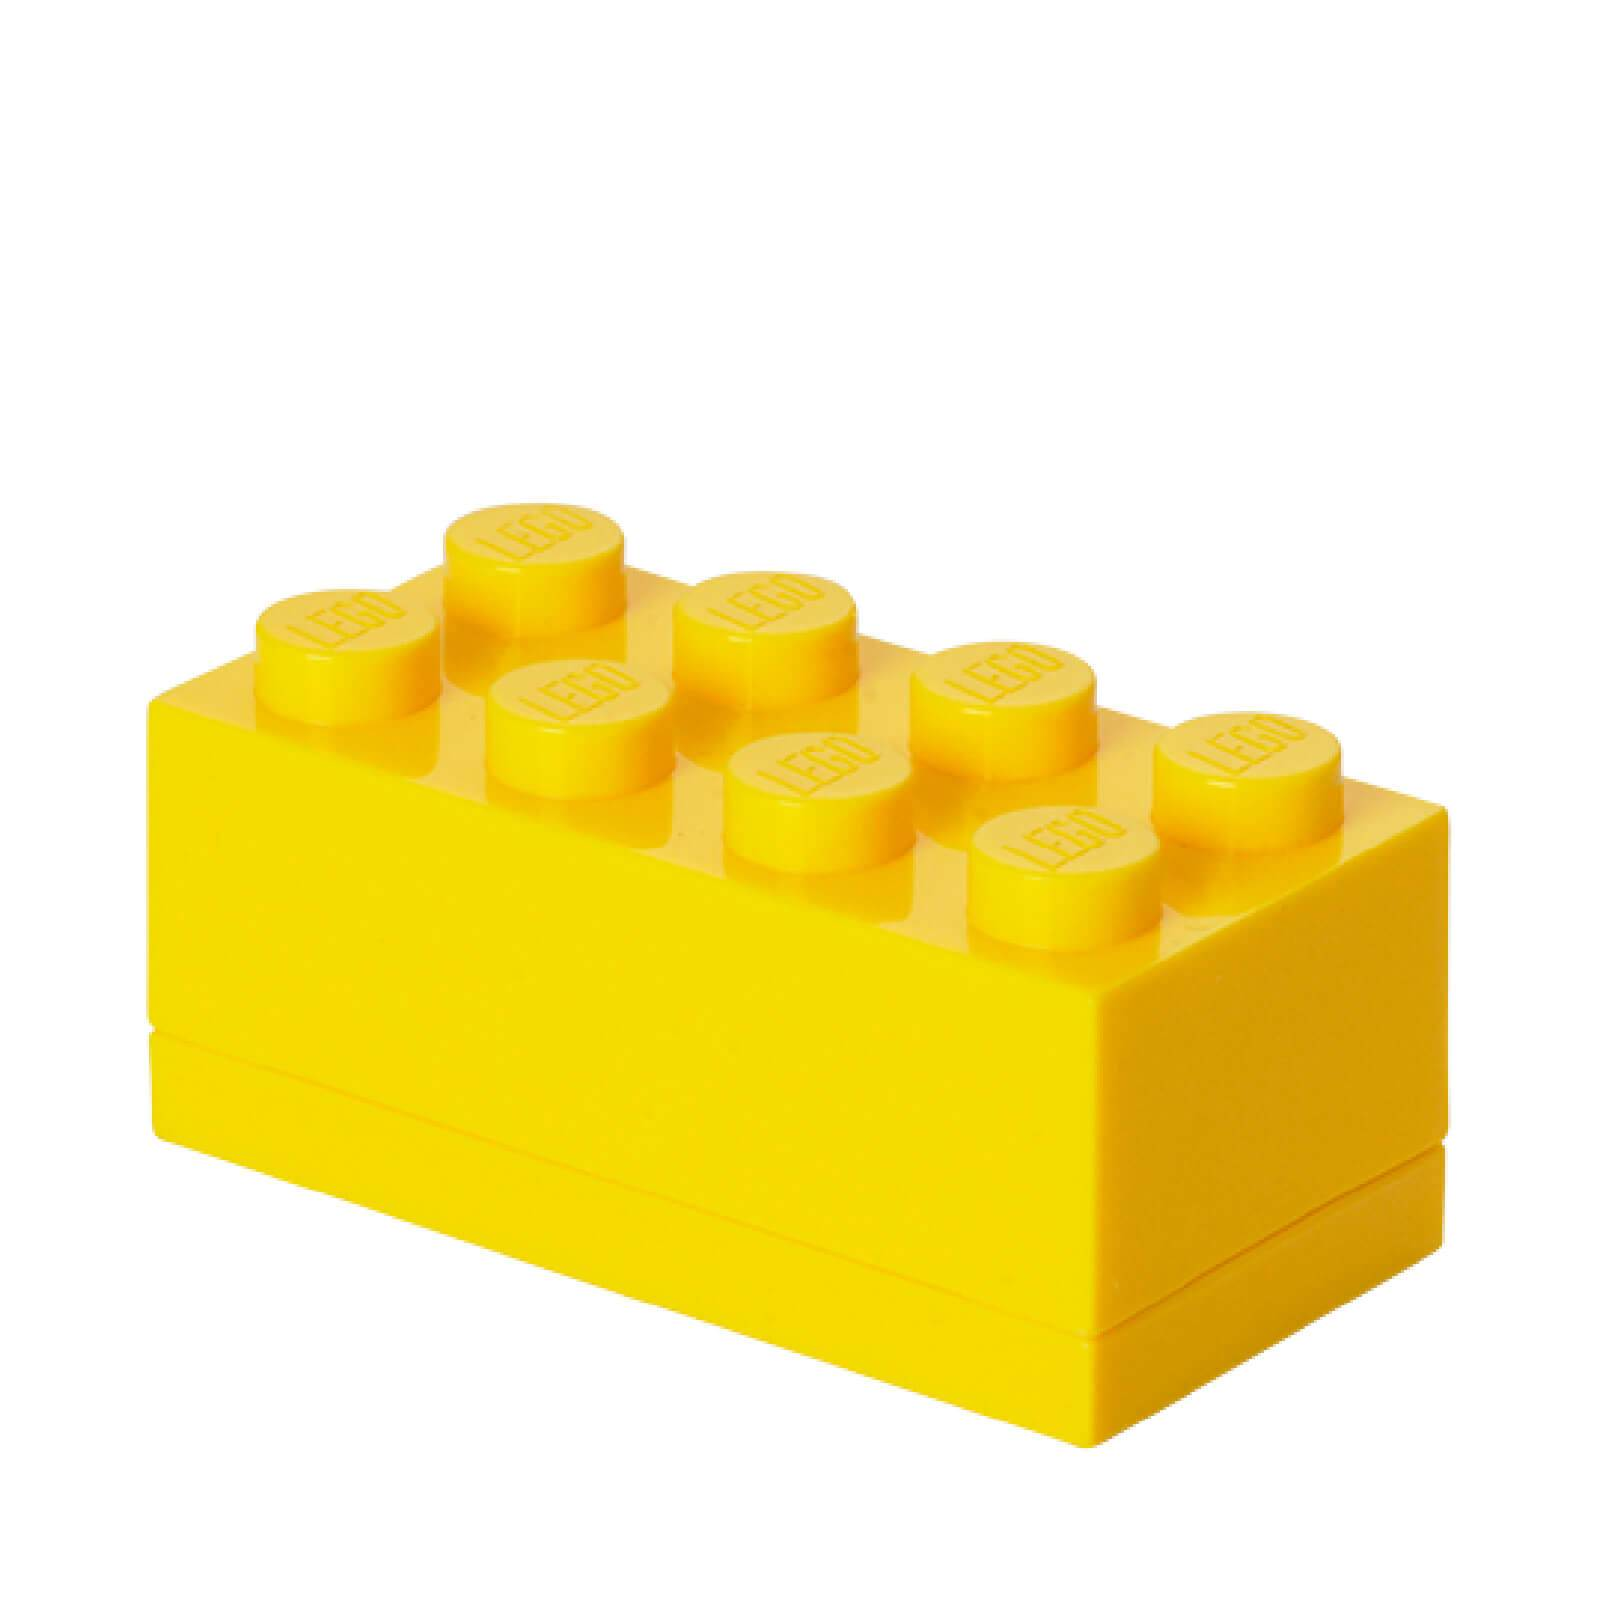 Lego Mini Box 8 - Bright Yellow